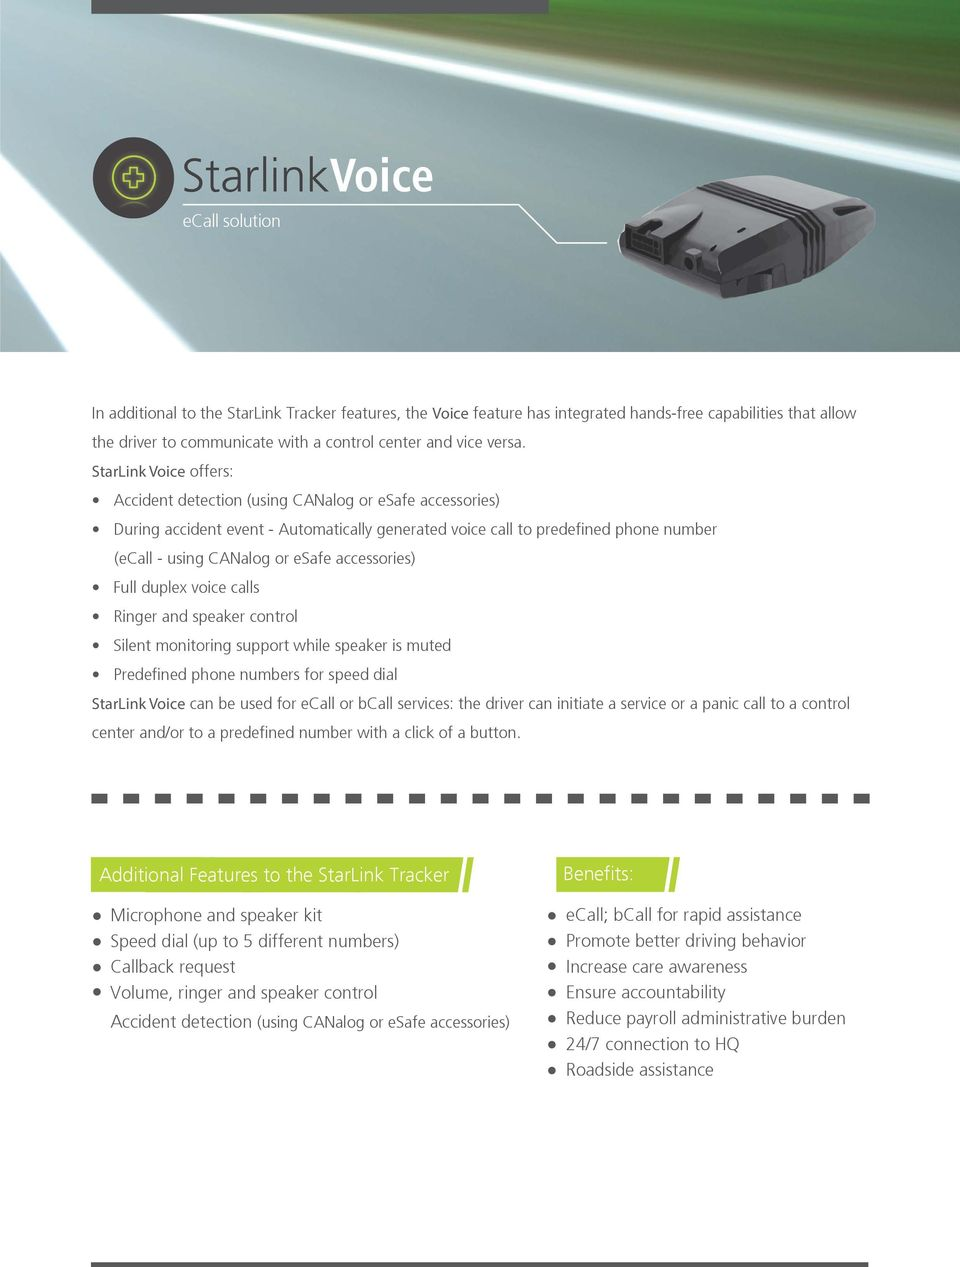 accessories) Full duplex voice calls Ringer and speaker control Silent monitoring support while speaker is muted Predefined phone numbers for speed dial StarLink Voice can be used for ecall or bcall